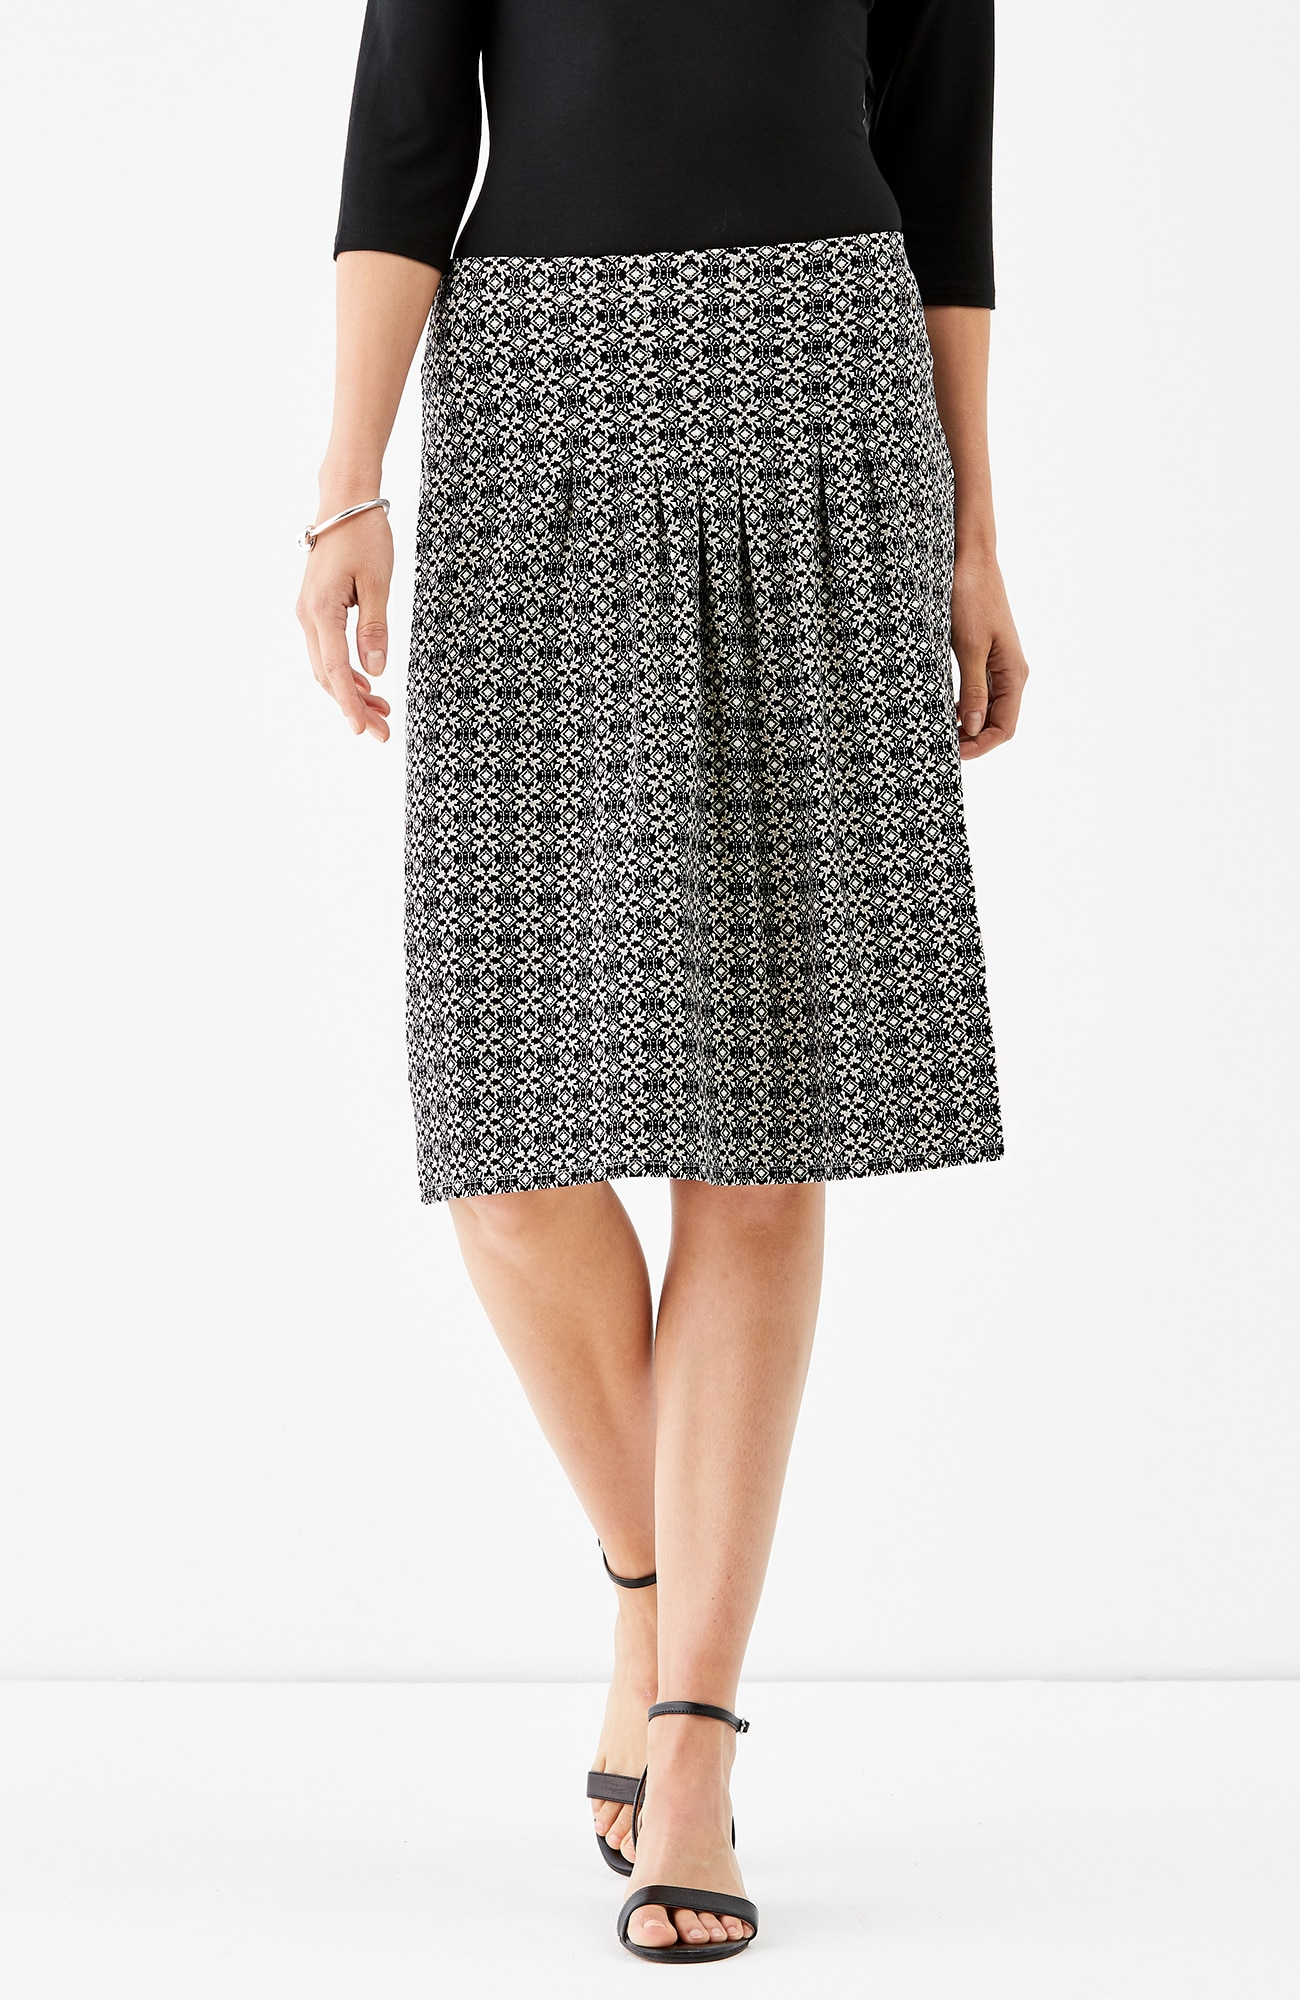 Wearever pleated A-line skirt